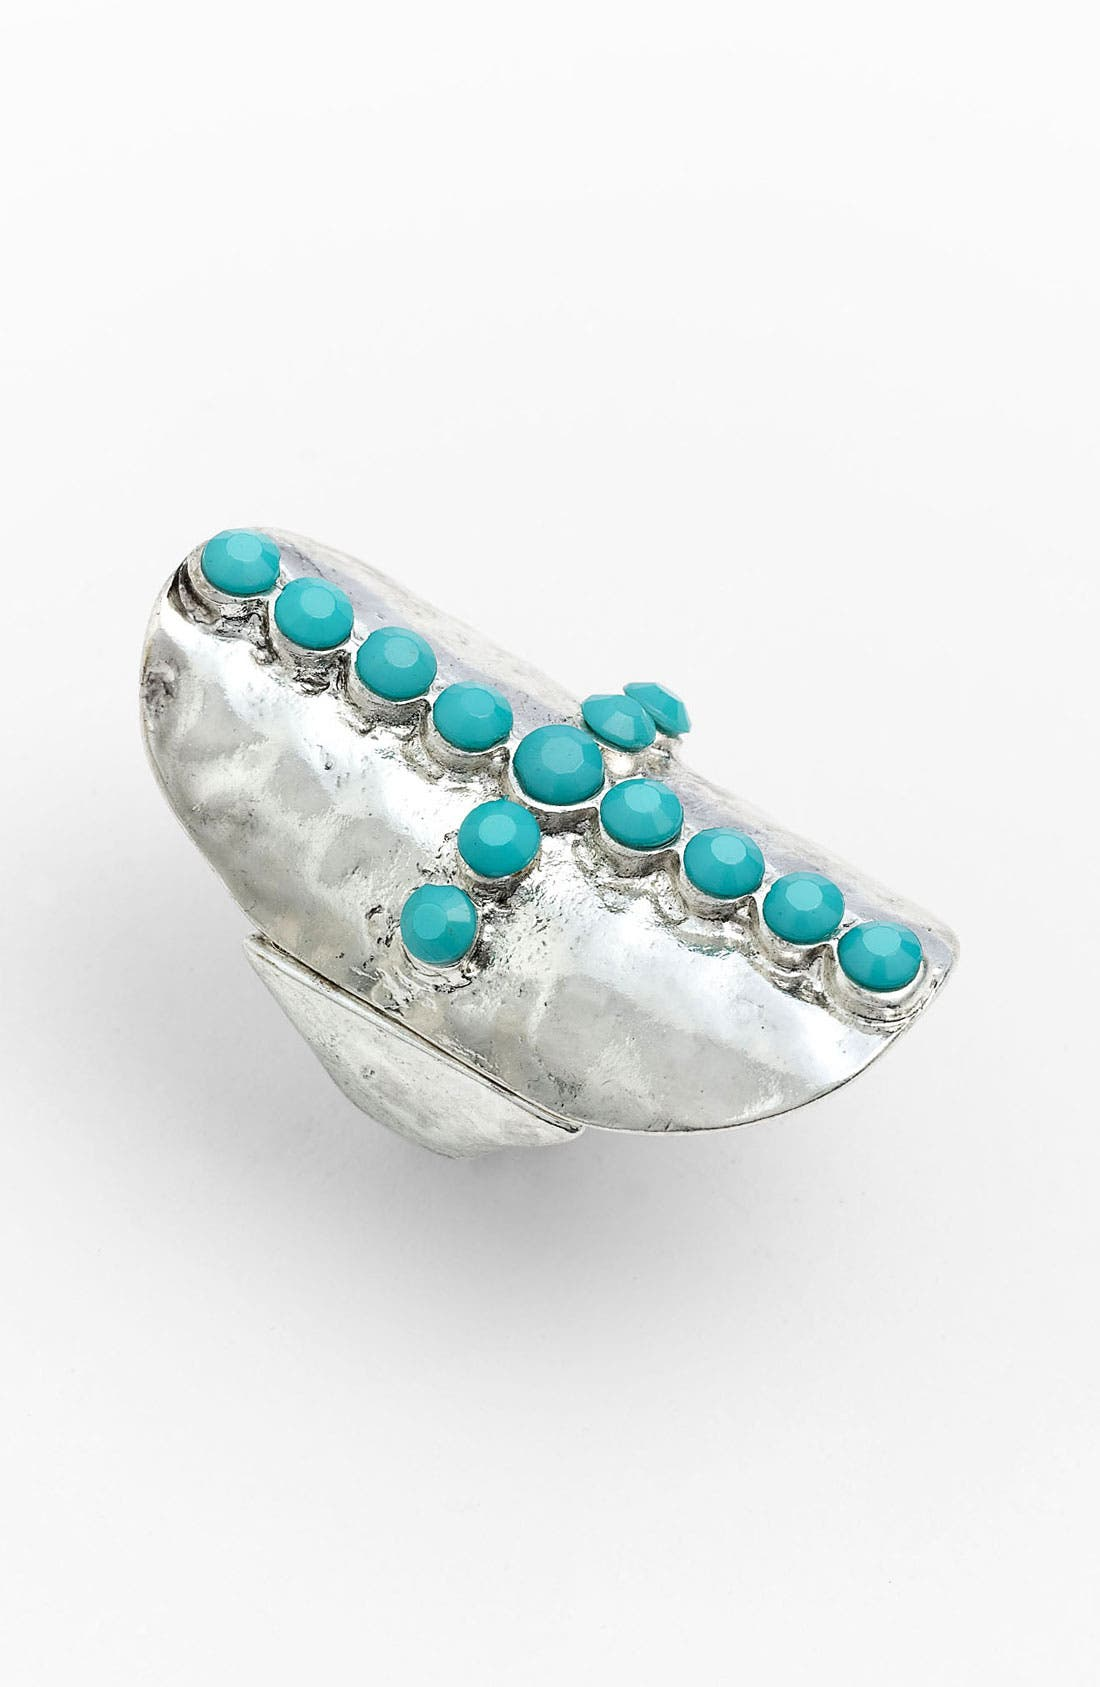 Main Image - Carole Turquoise Rhinestone Cross Shield Ring (Online Exclusive)